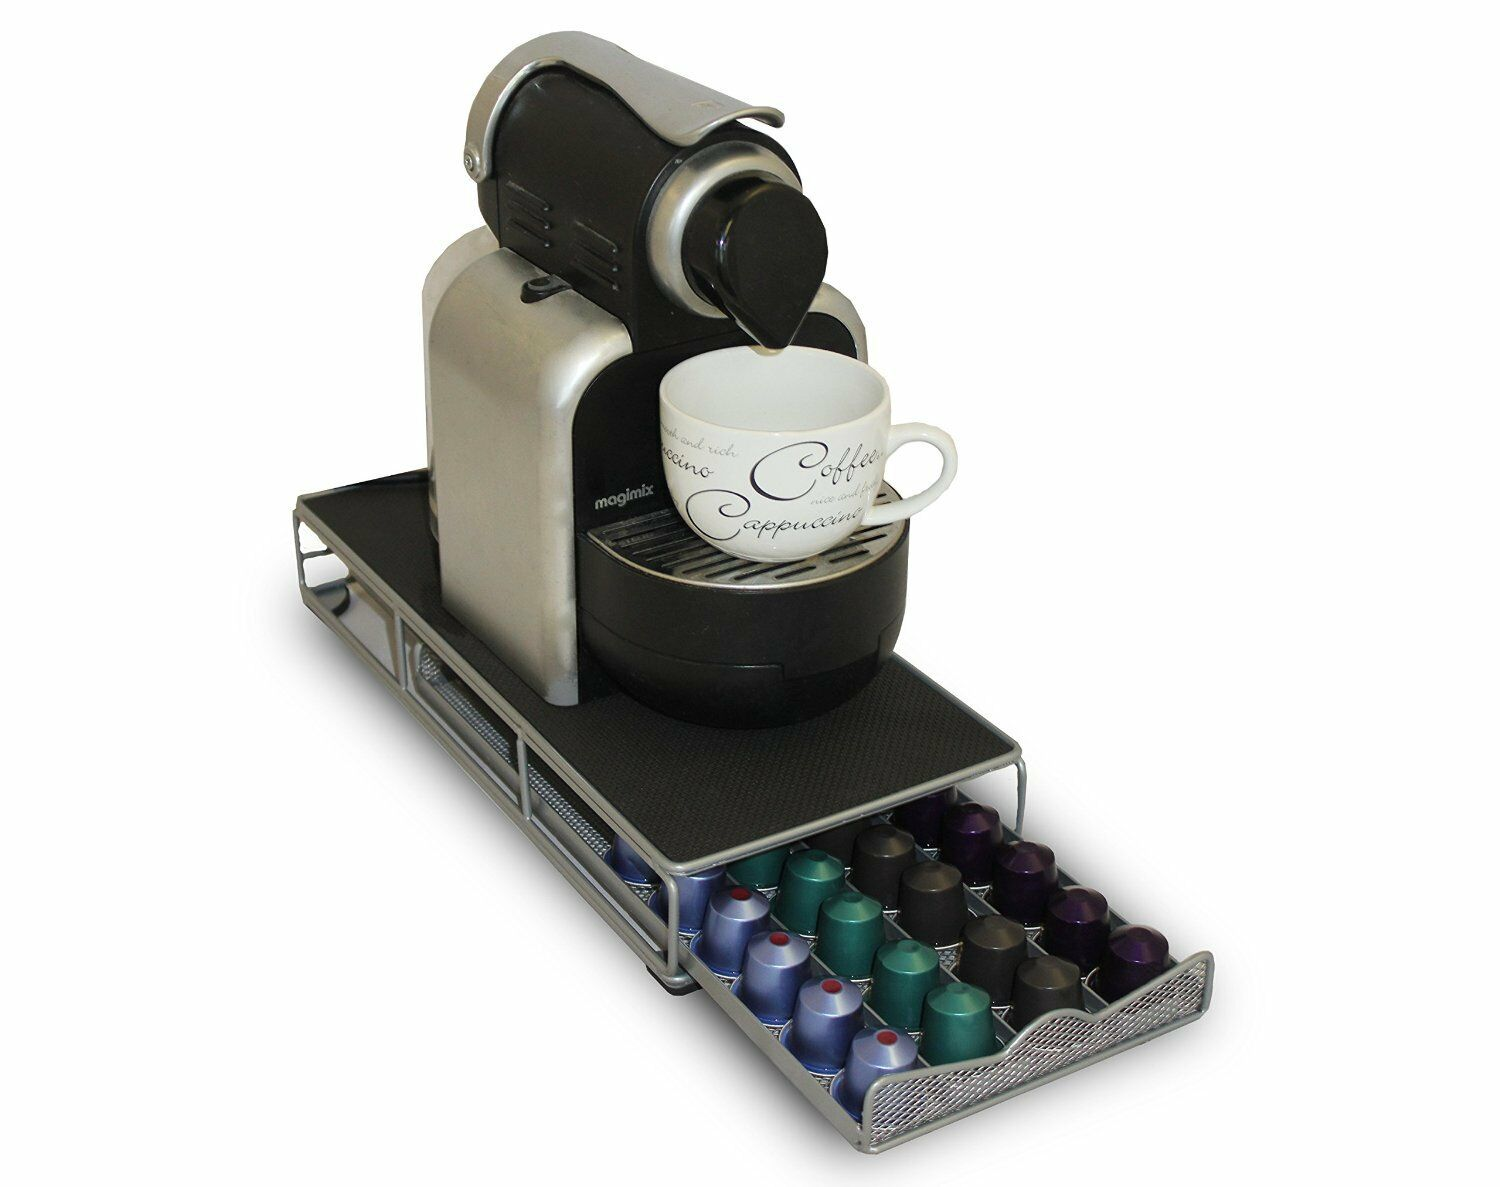 48 pod nespresso coffee capsule holder storage dispenser machine stand drawer ebay. Black Bedroom Furniture Sets. Home Design Ideas